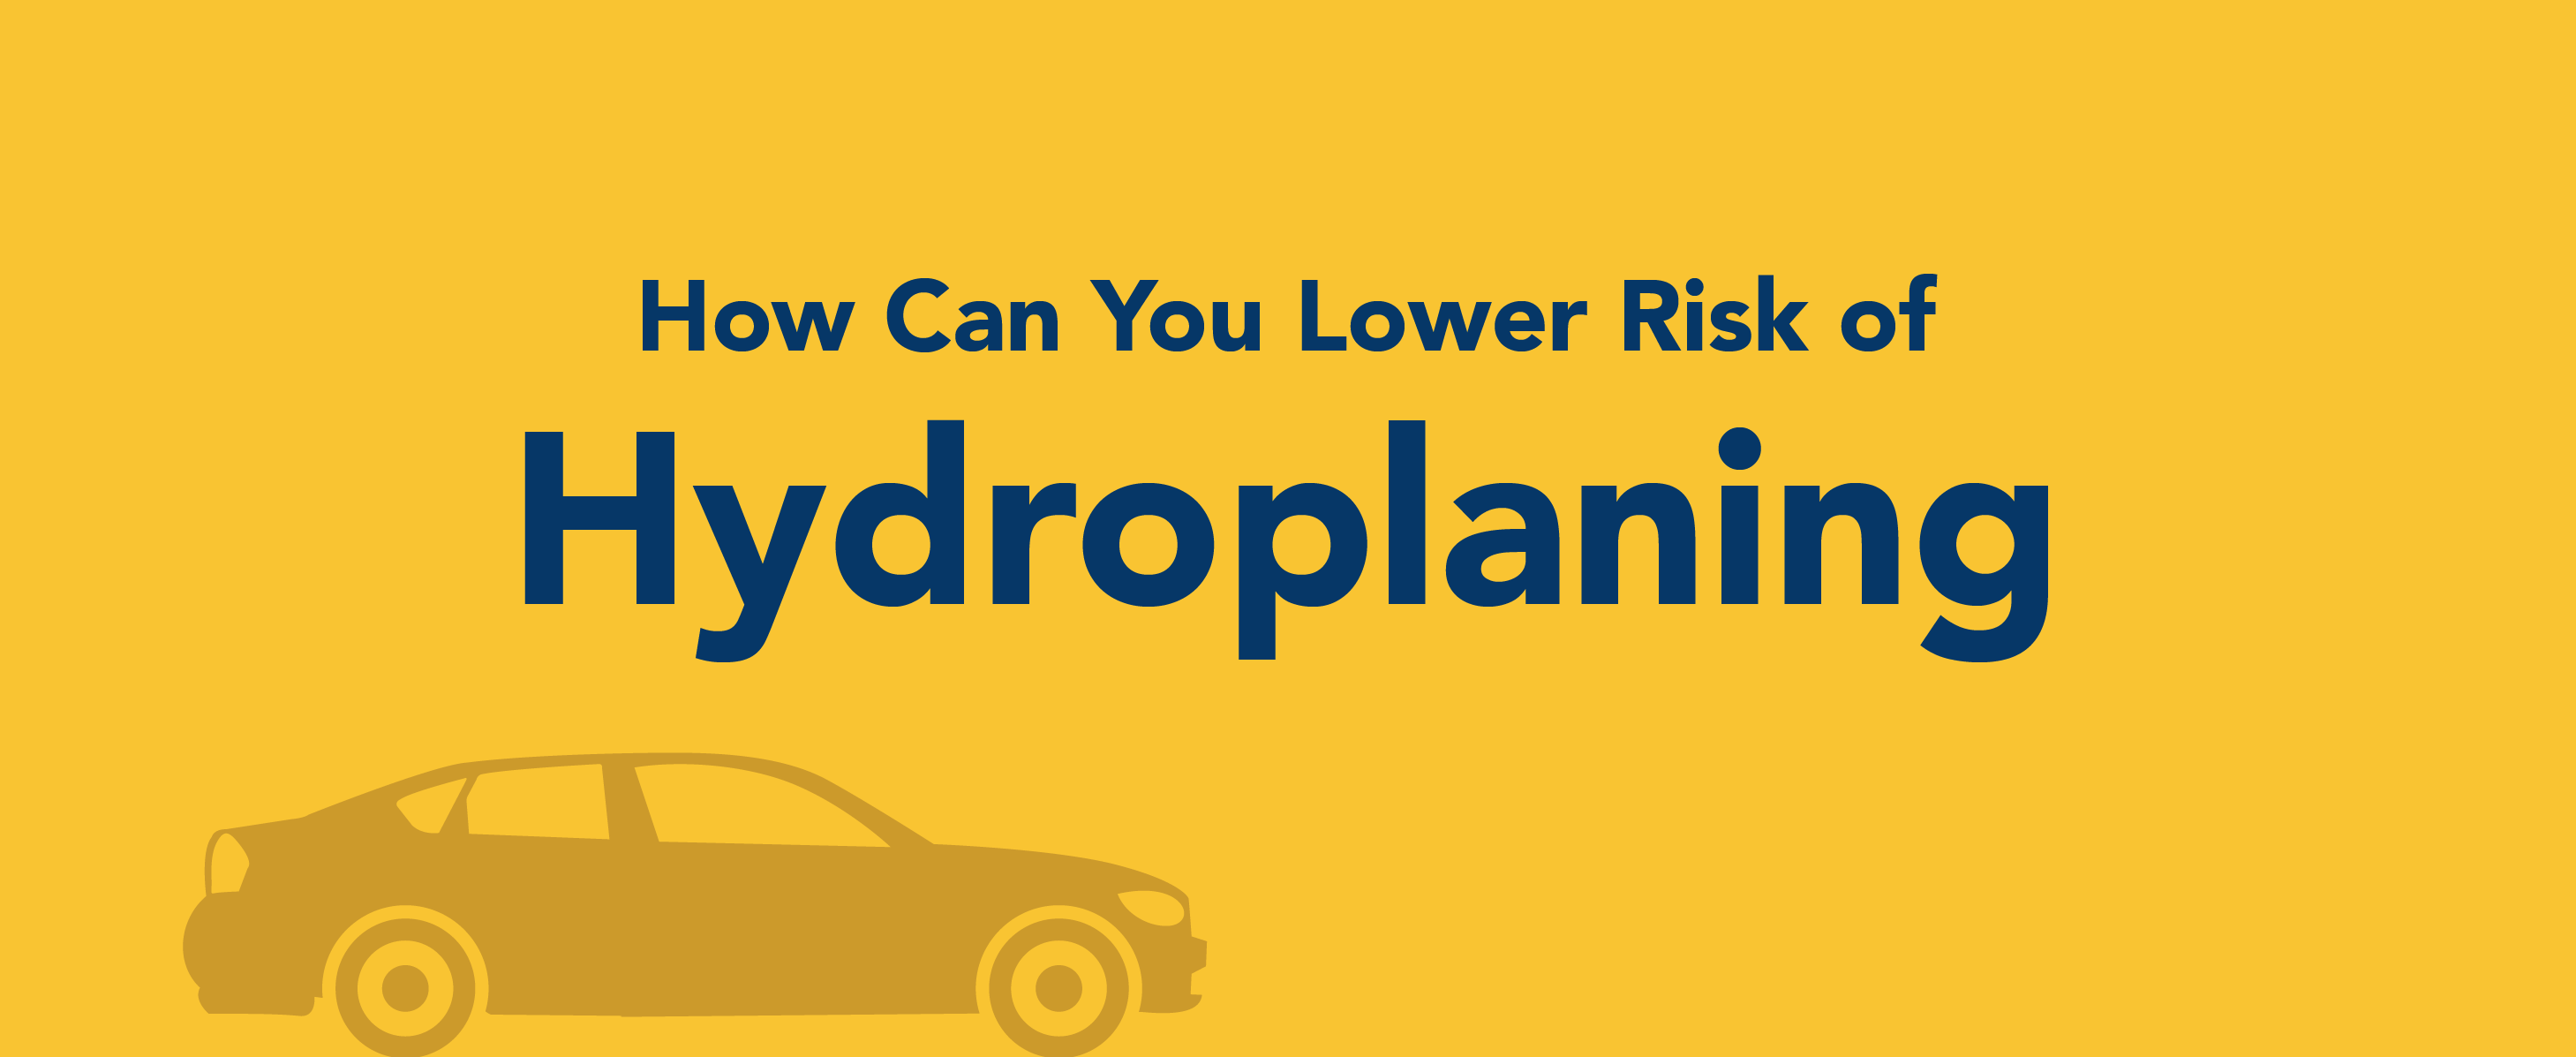 How can you lower risk of hydroplaning.